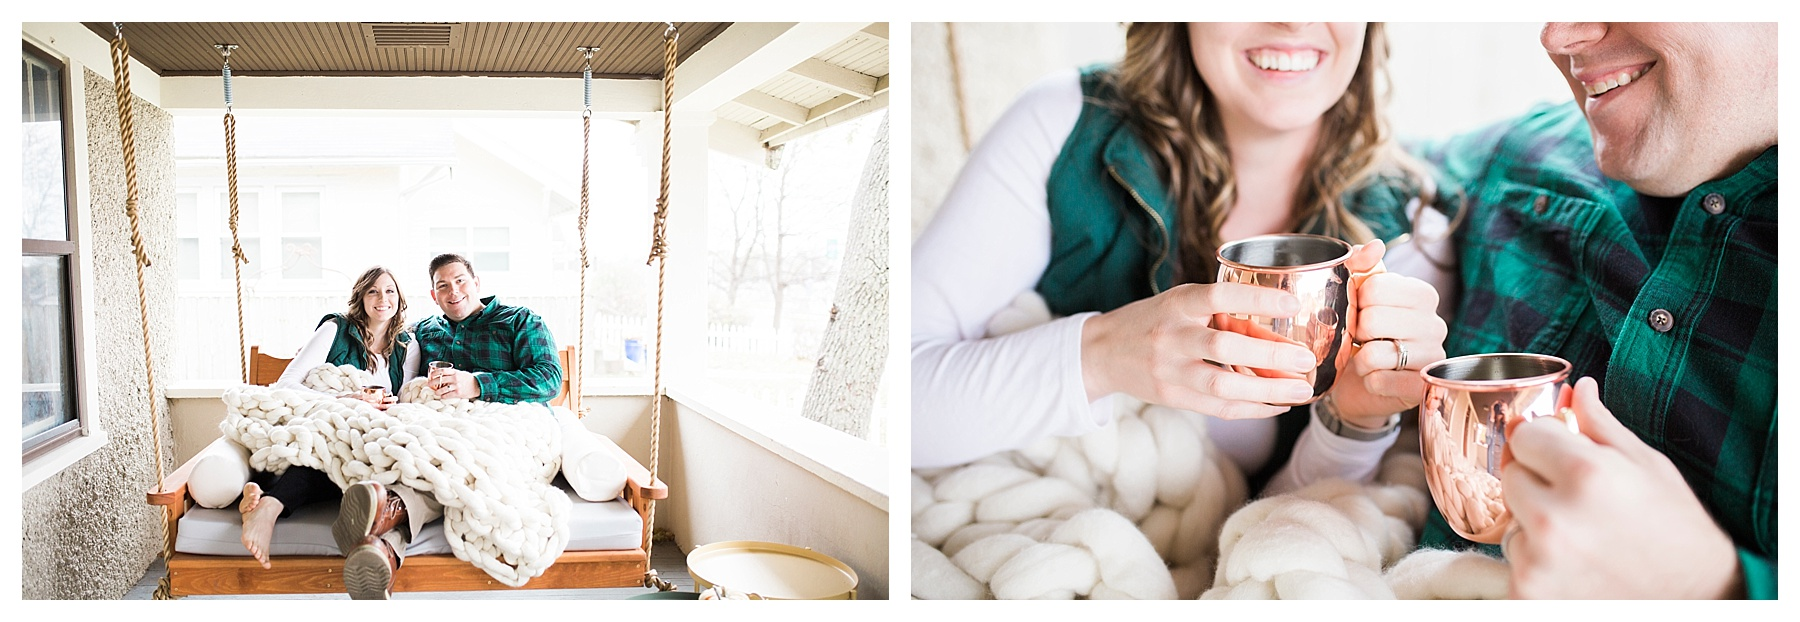 Des Moines Photographer | engagement session | First home | Couple Session | Kara Vorwald